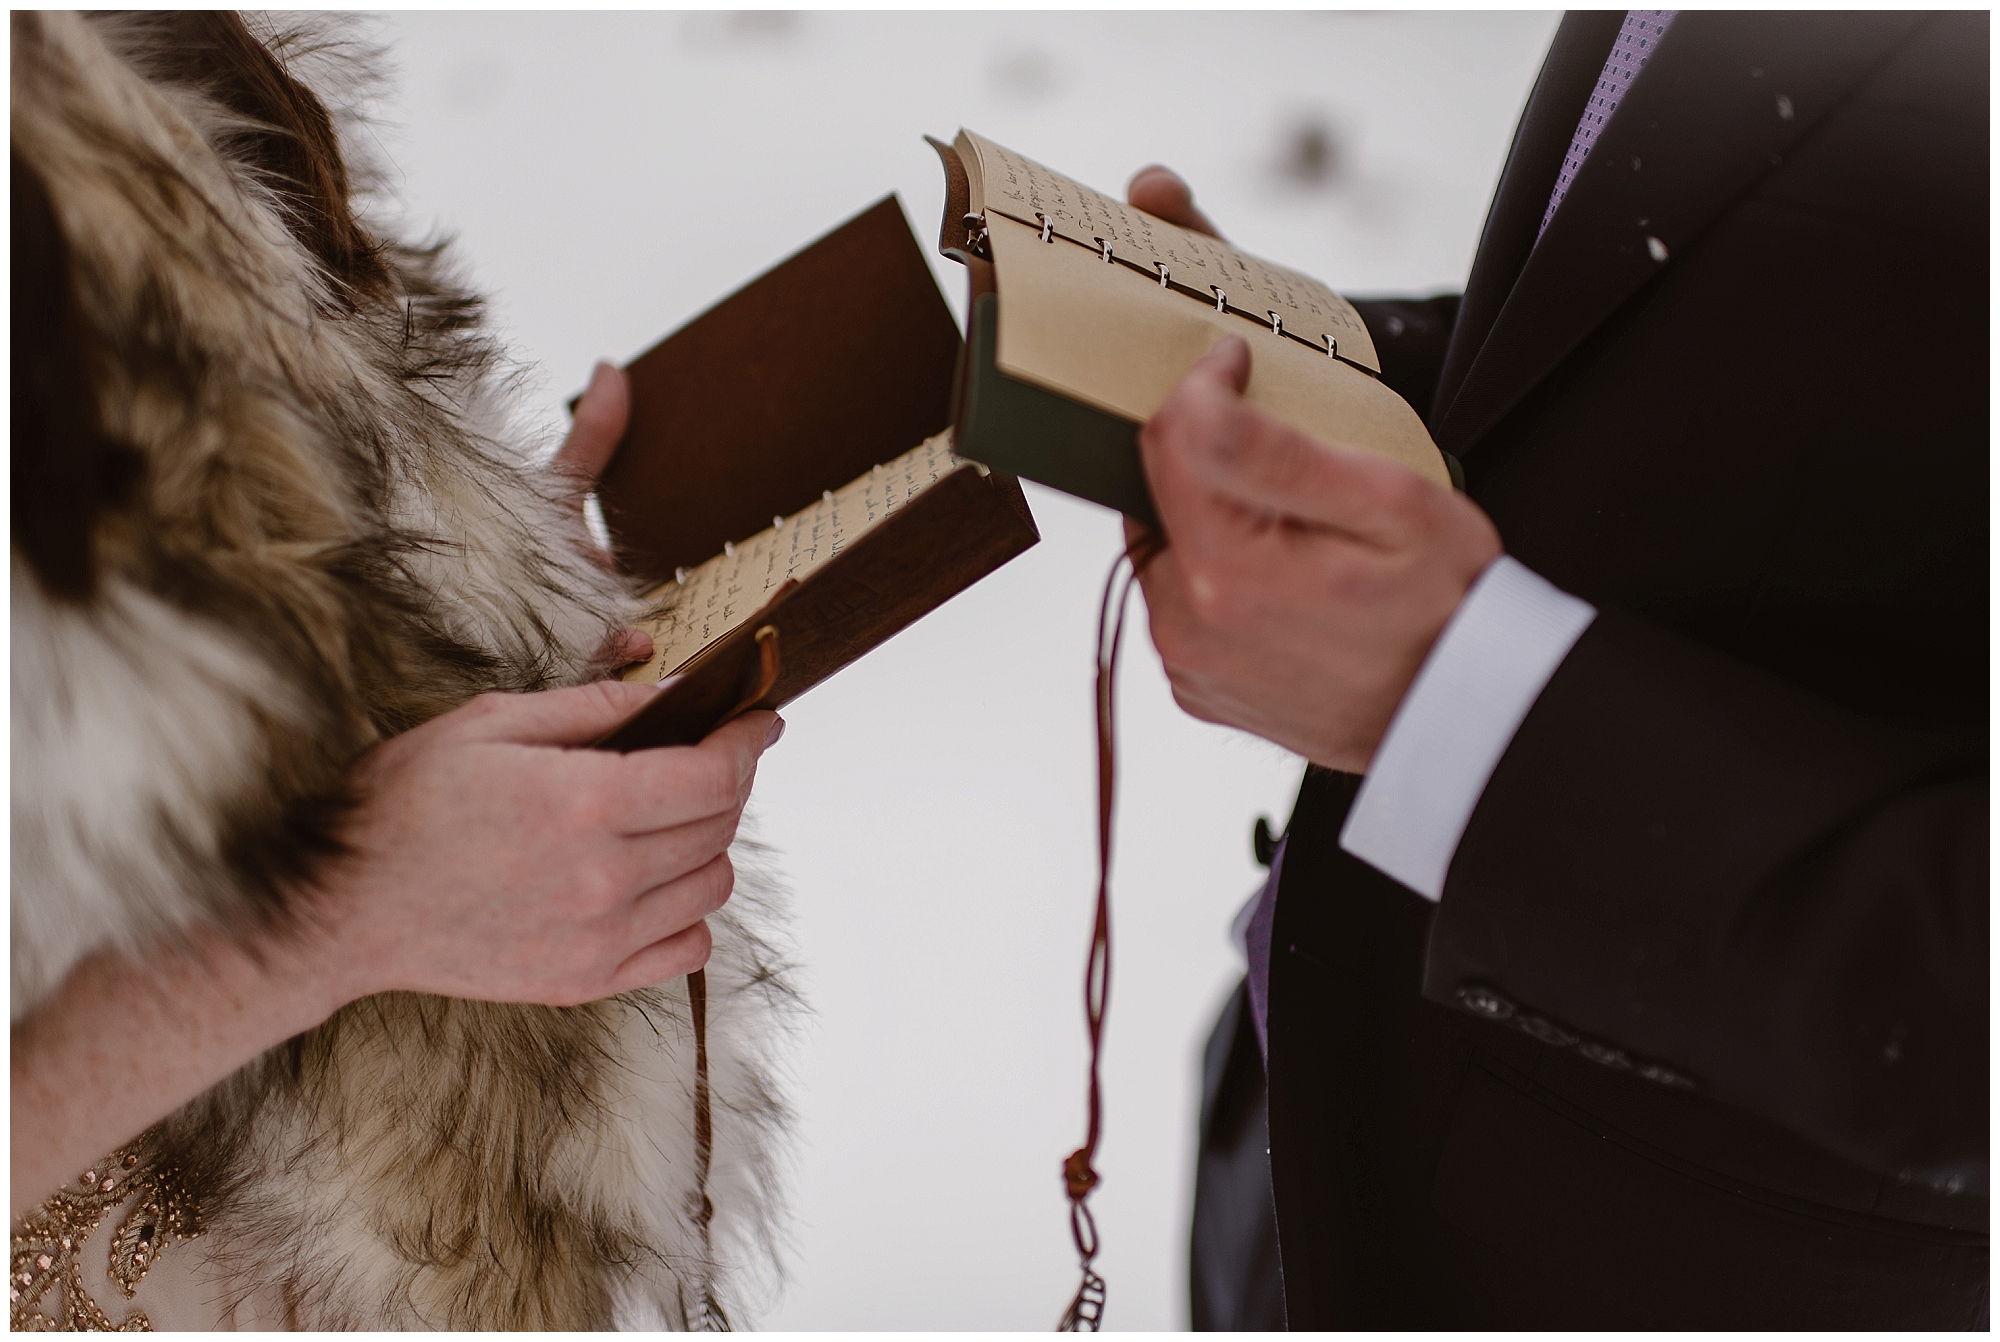 Marlayna and Austin read their handwritten vows from their leather bound notebooks during their snowy winter elopement ceremony. Photo by Adventure Instead, Maddie Mae Elopement Photographers.